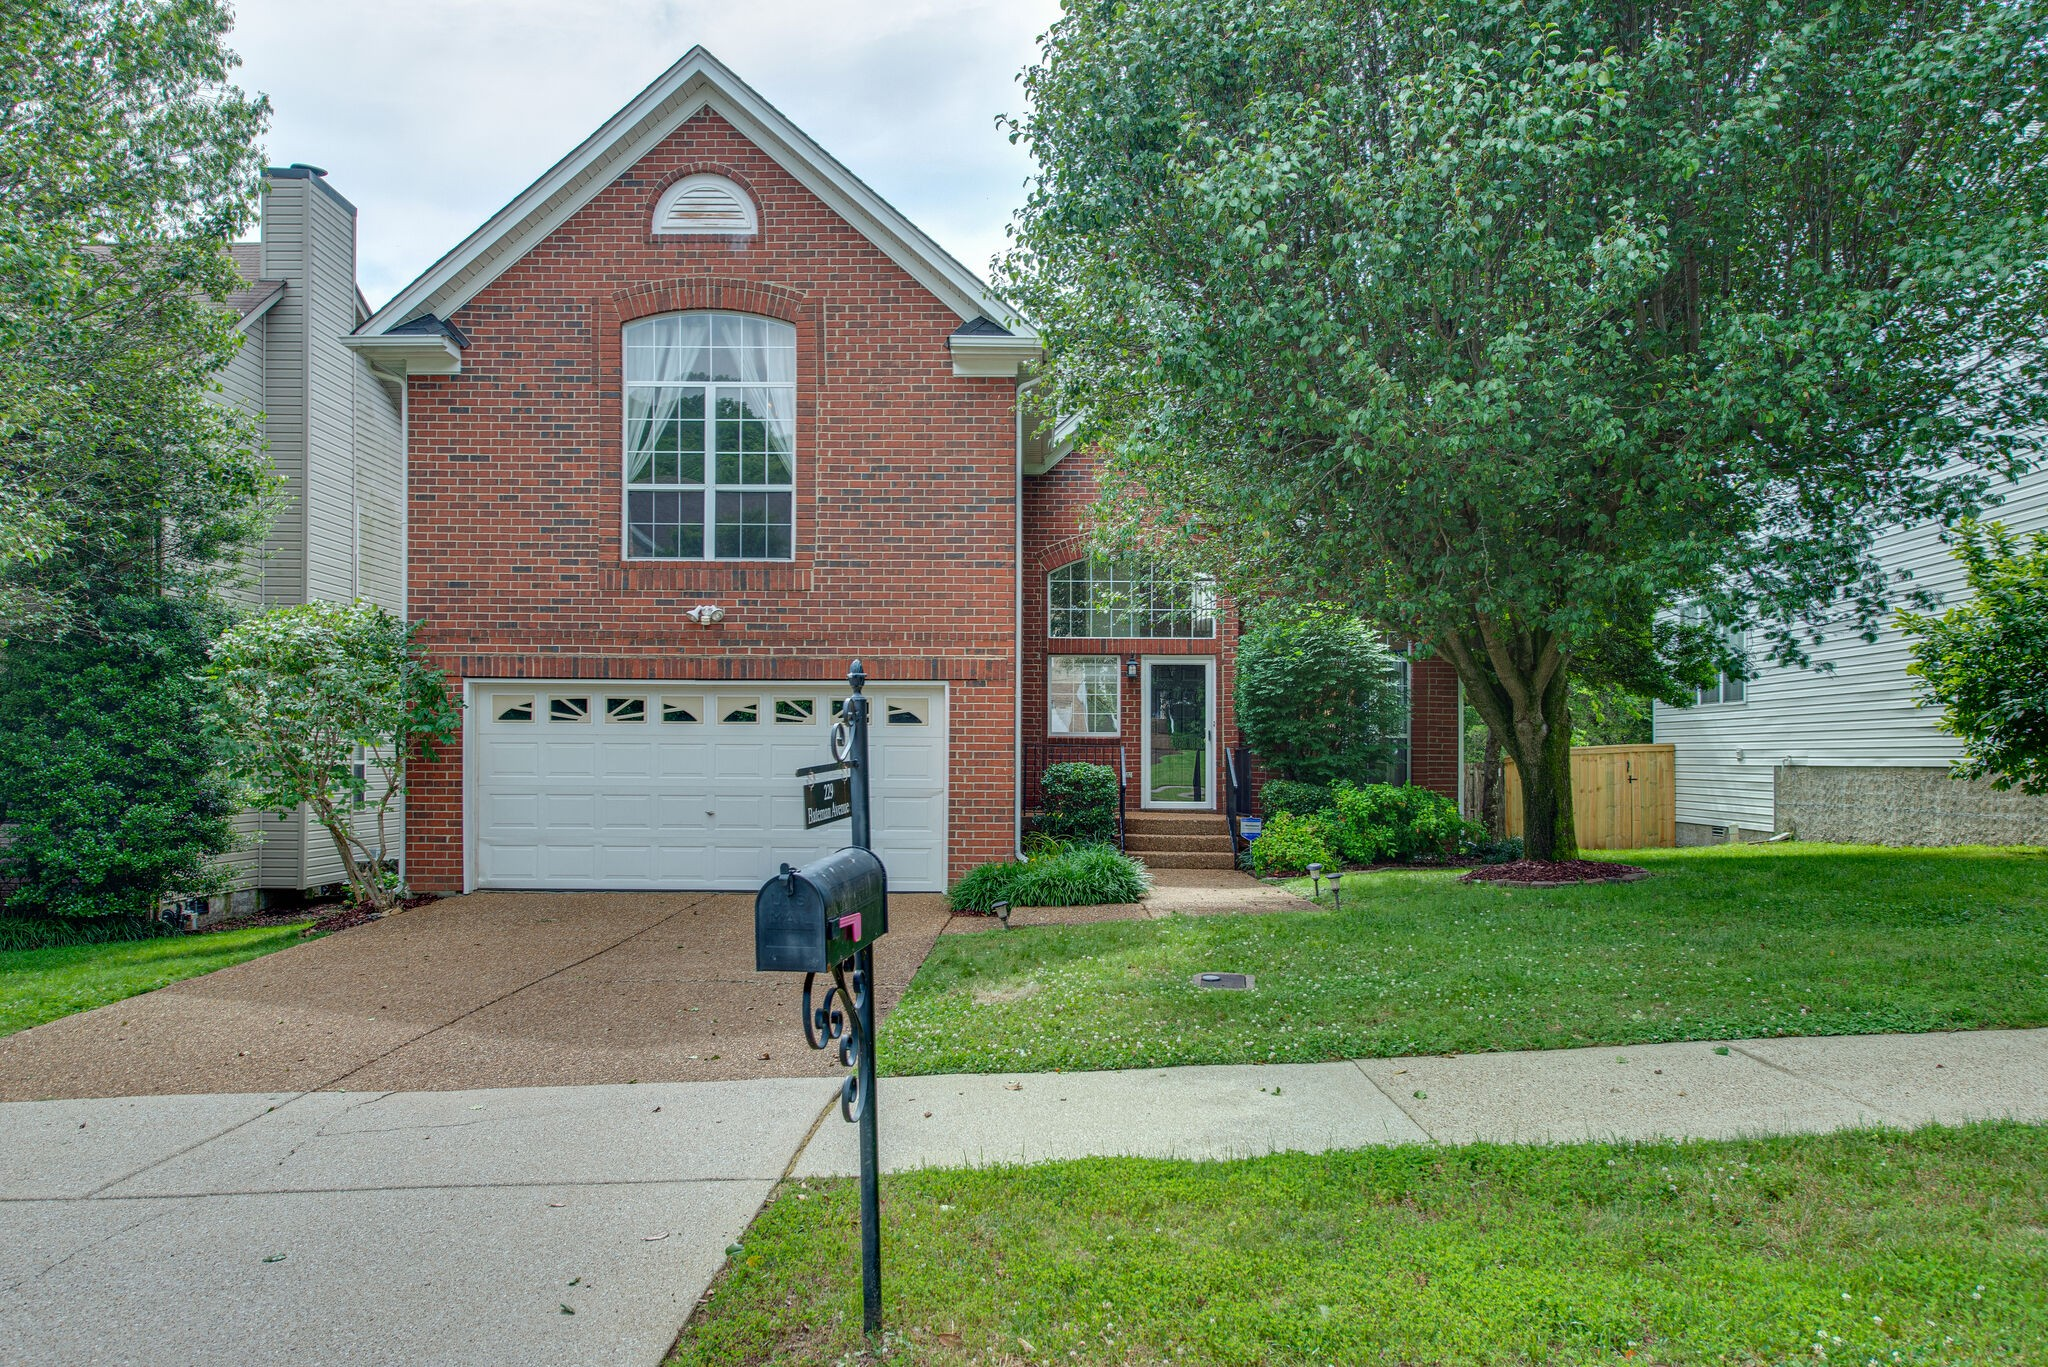 Wonderful home in the heart of Cool Springs. Amazing location with easy access to I-65. 3 bedrooms (owner's suite on first floor), 2.5 baths. Hardwoods in living areas. Huge bonus room with fireplace. Granite and new appliances in kitchen. Large new deck.